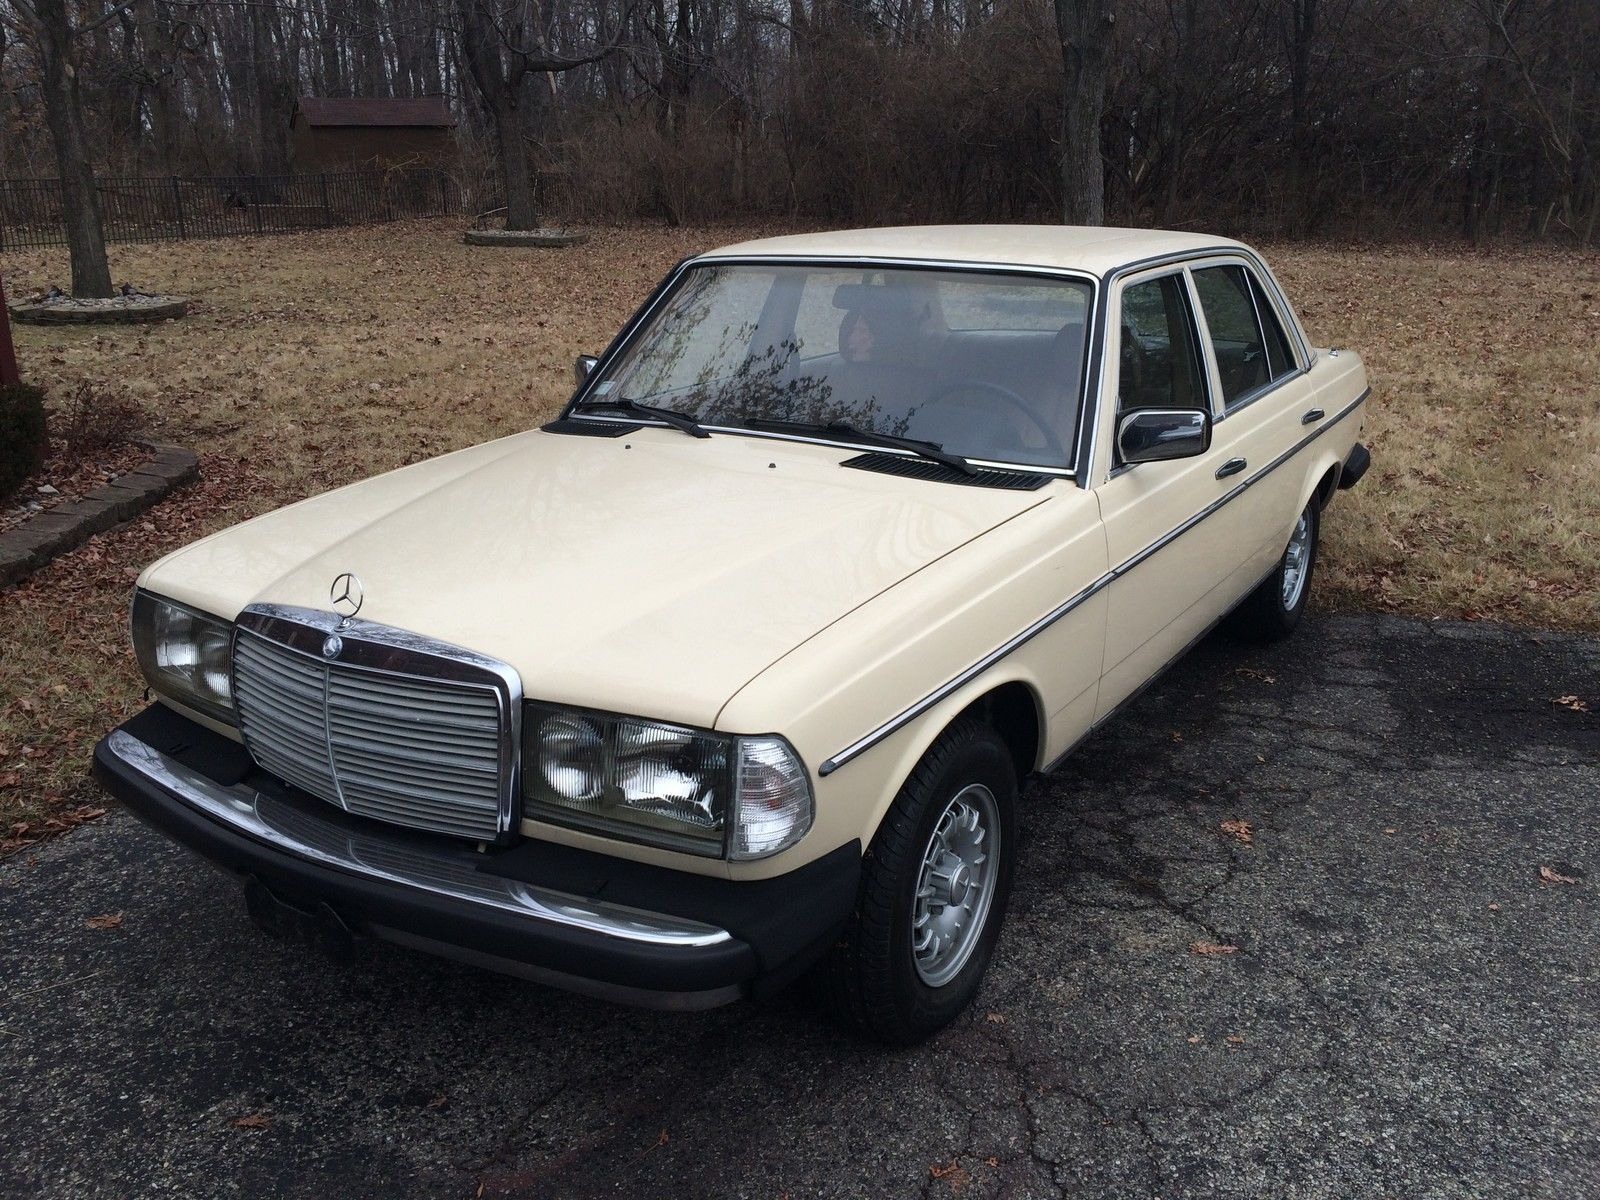 1983 mercedes benz 300 td turbo diesel no reserve for Mercedes benz 300 td